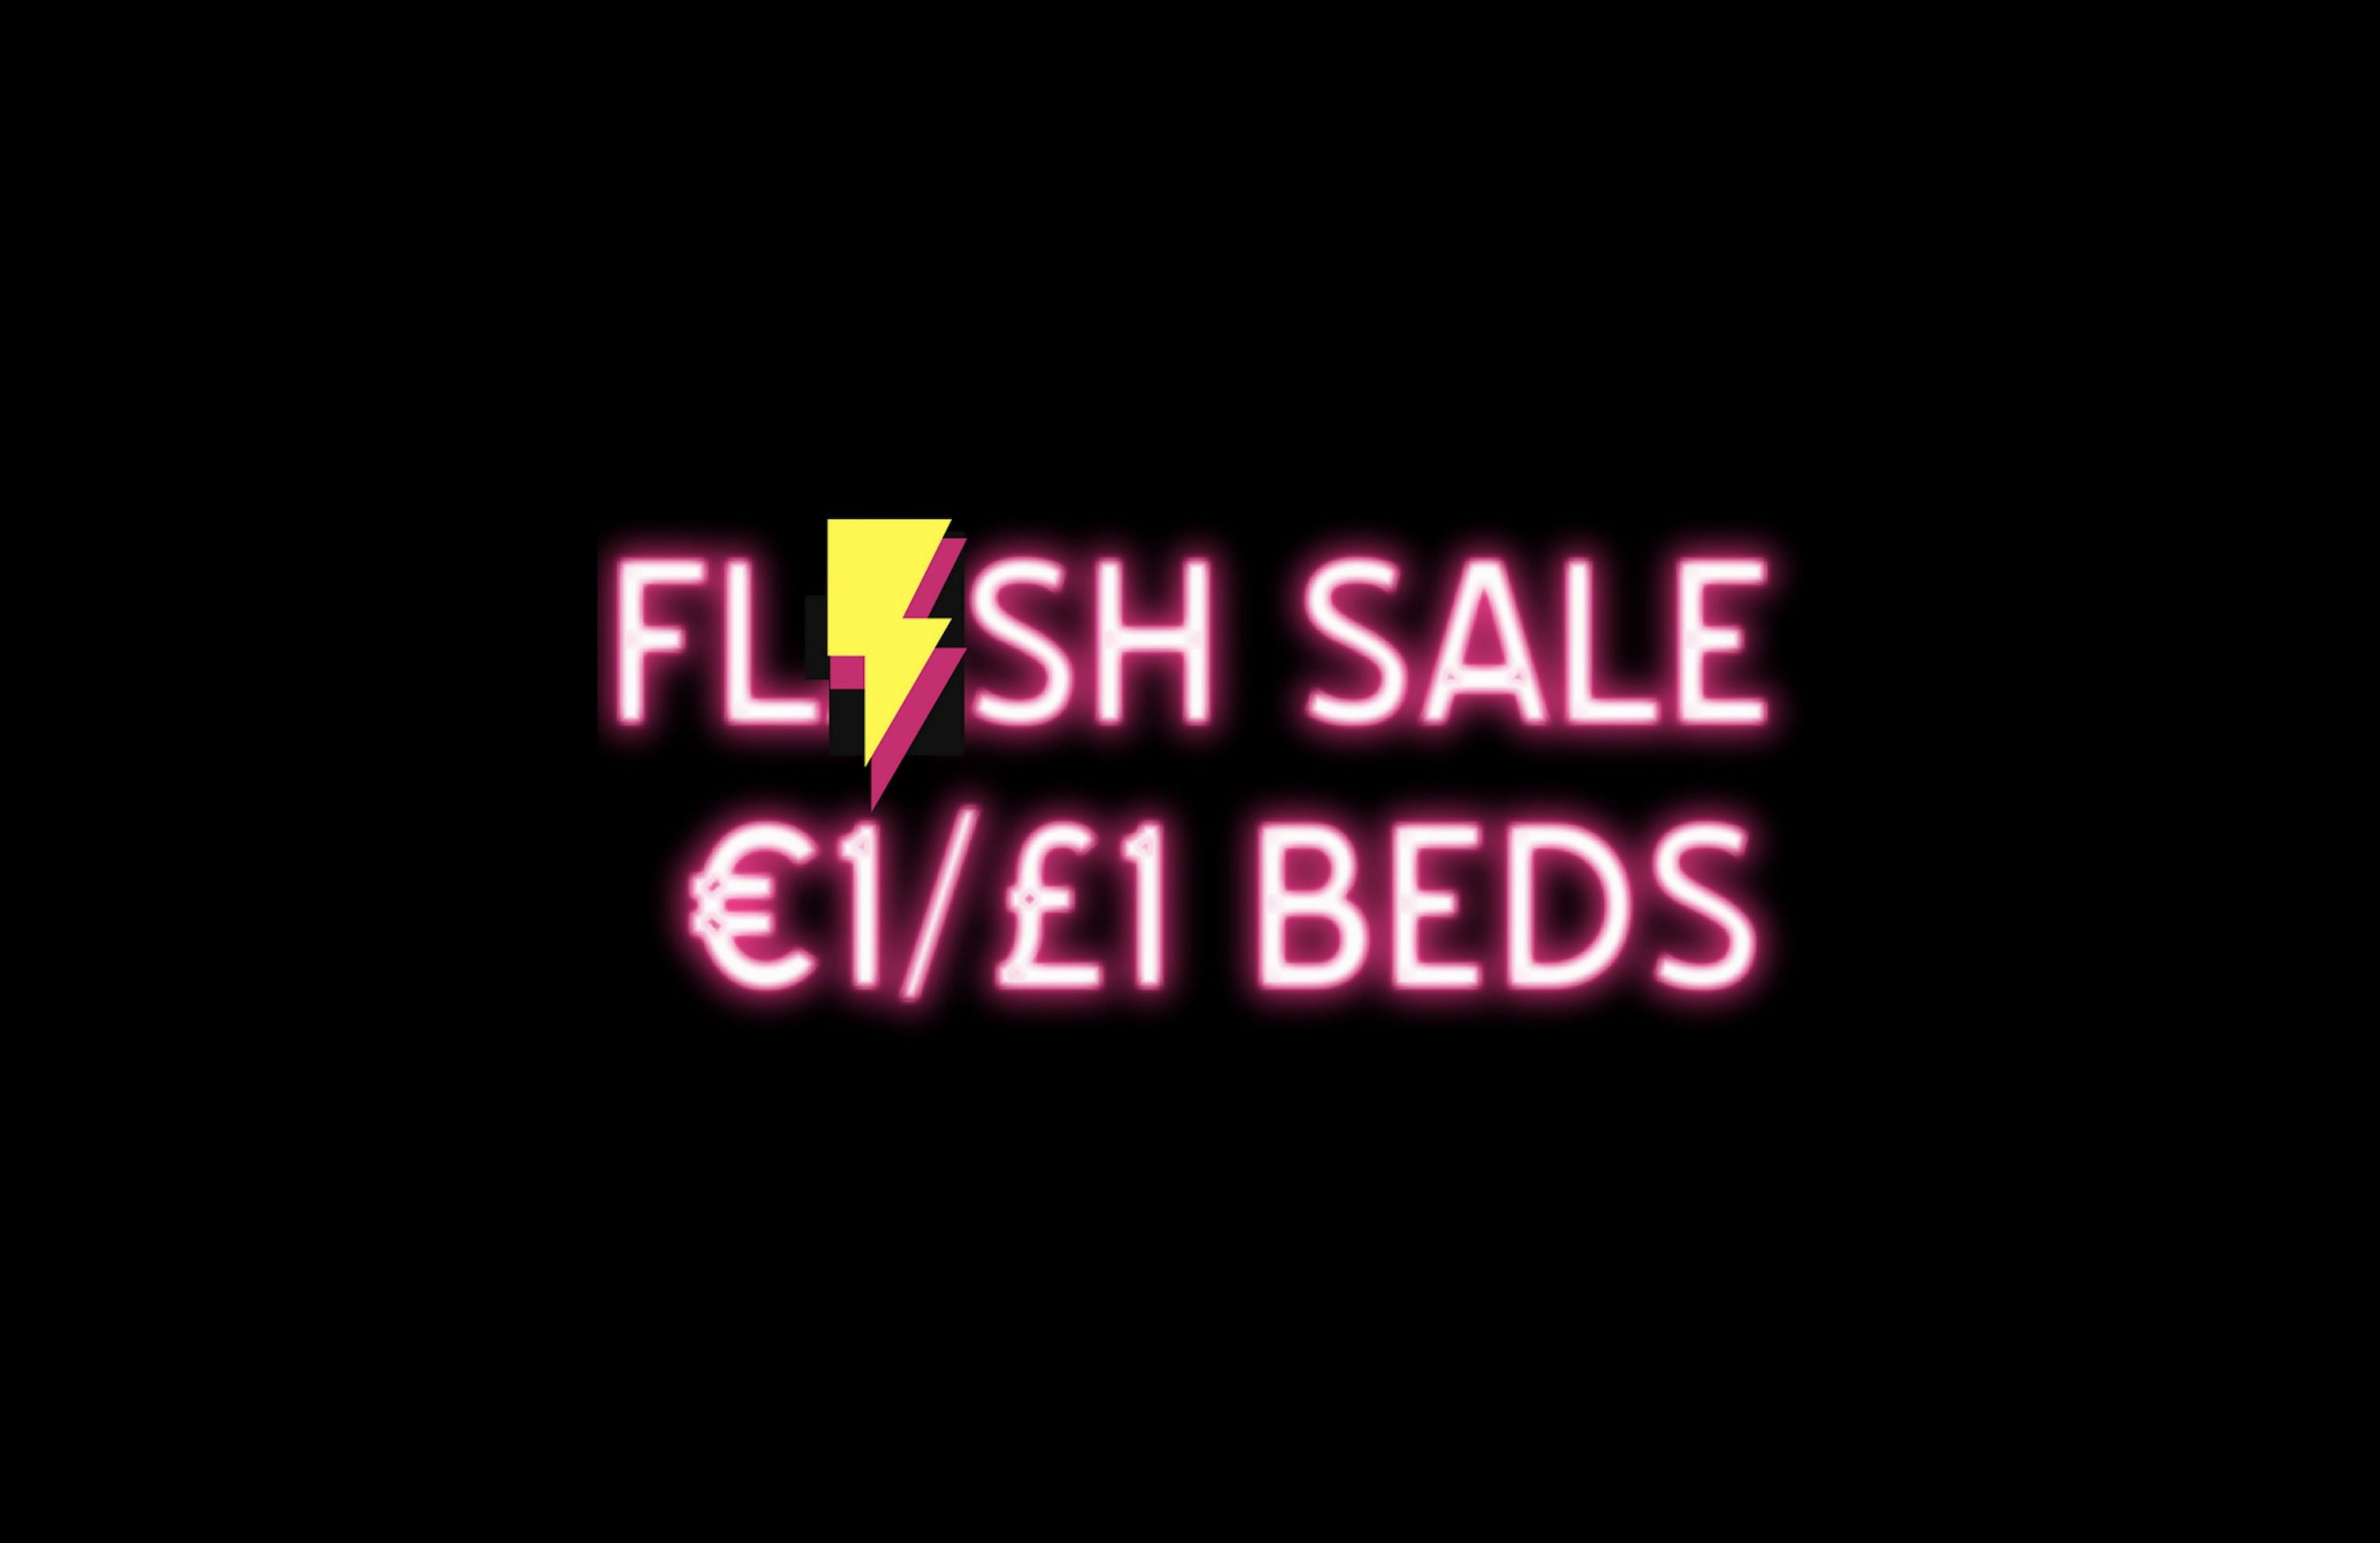 £1/€1 Flash Sale!